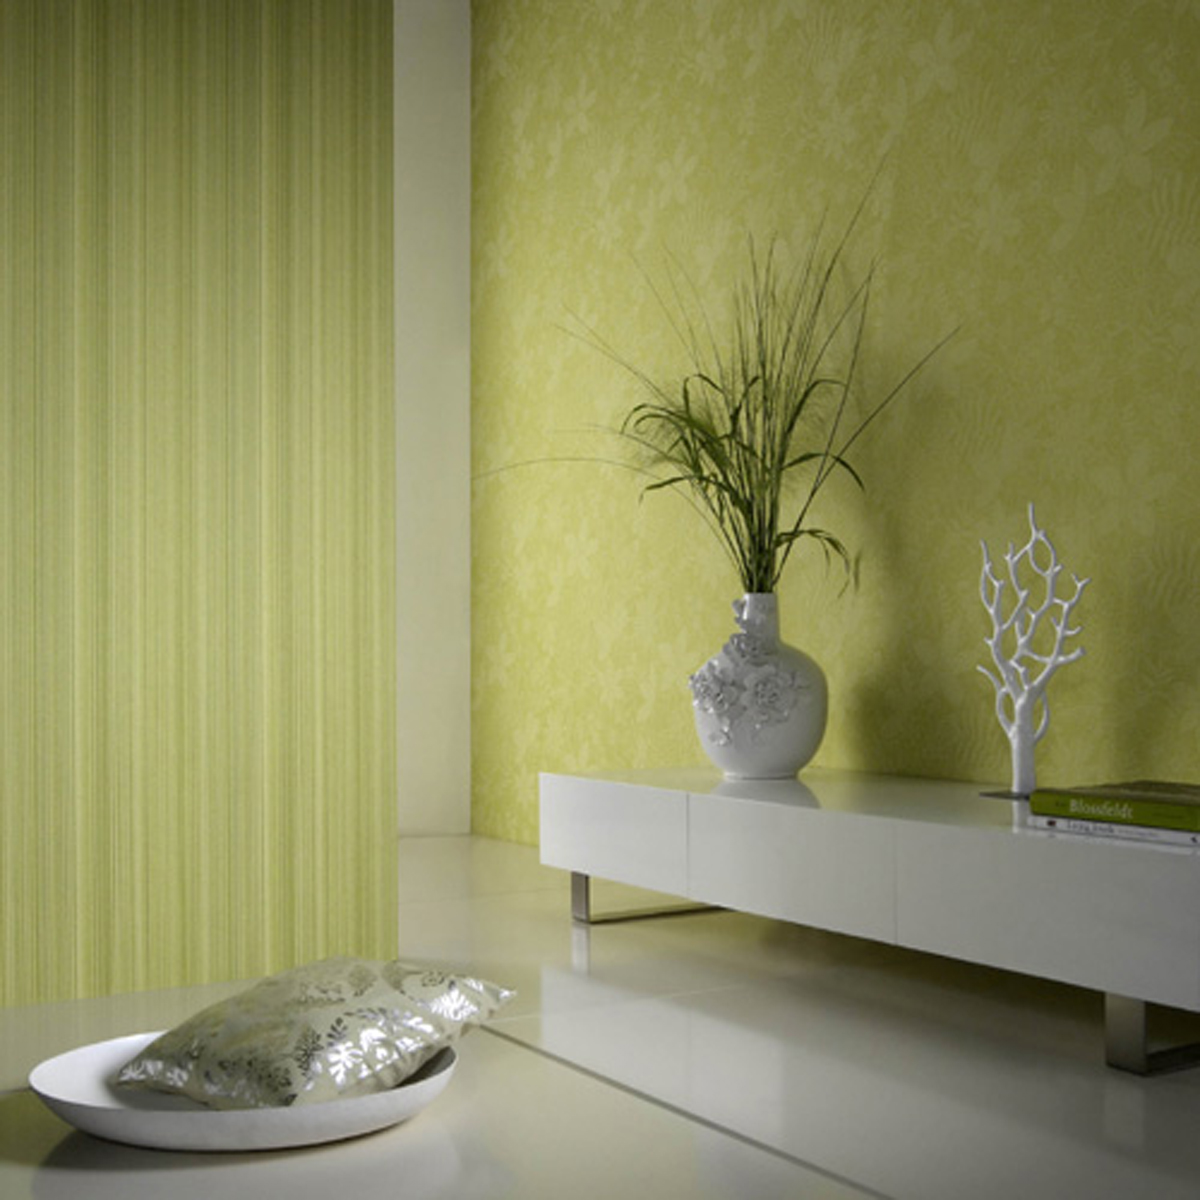 Modern wallpaper designs 2017 grasscloth wallpaper for Wallpaper home ideas